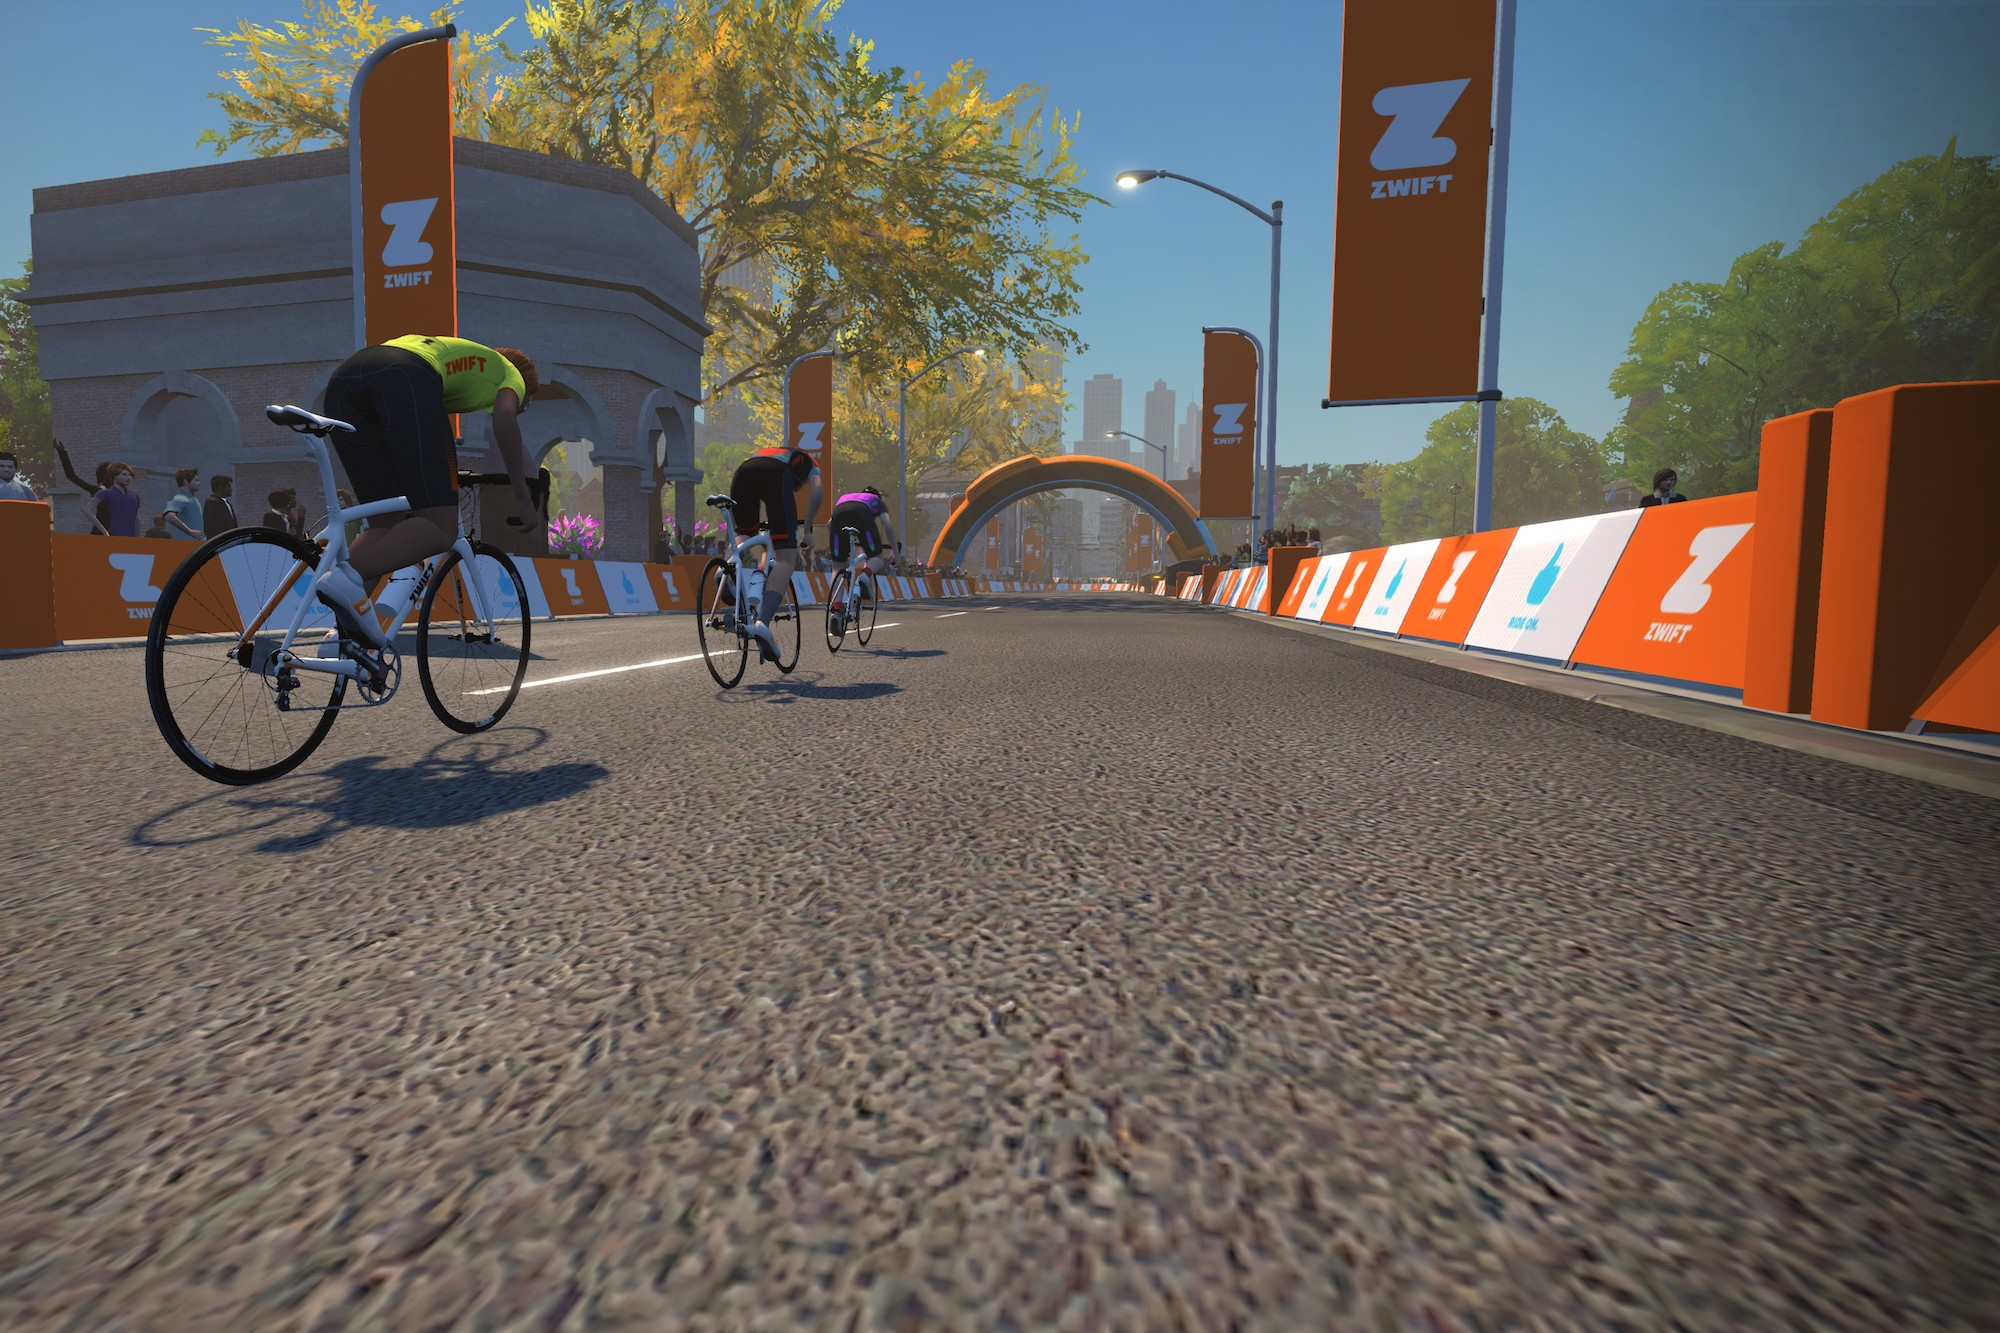 Zwift launches Crit City map exclusively for racing